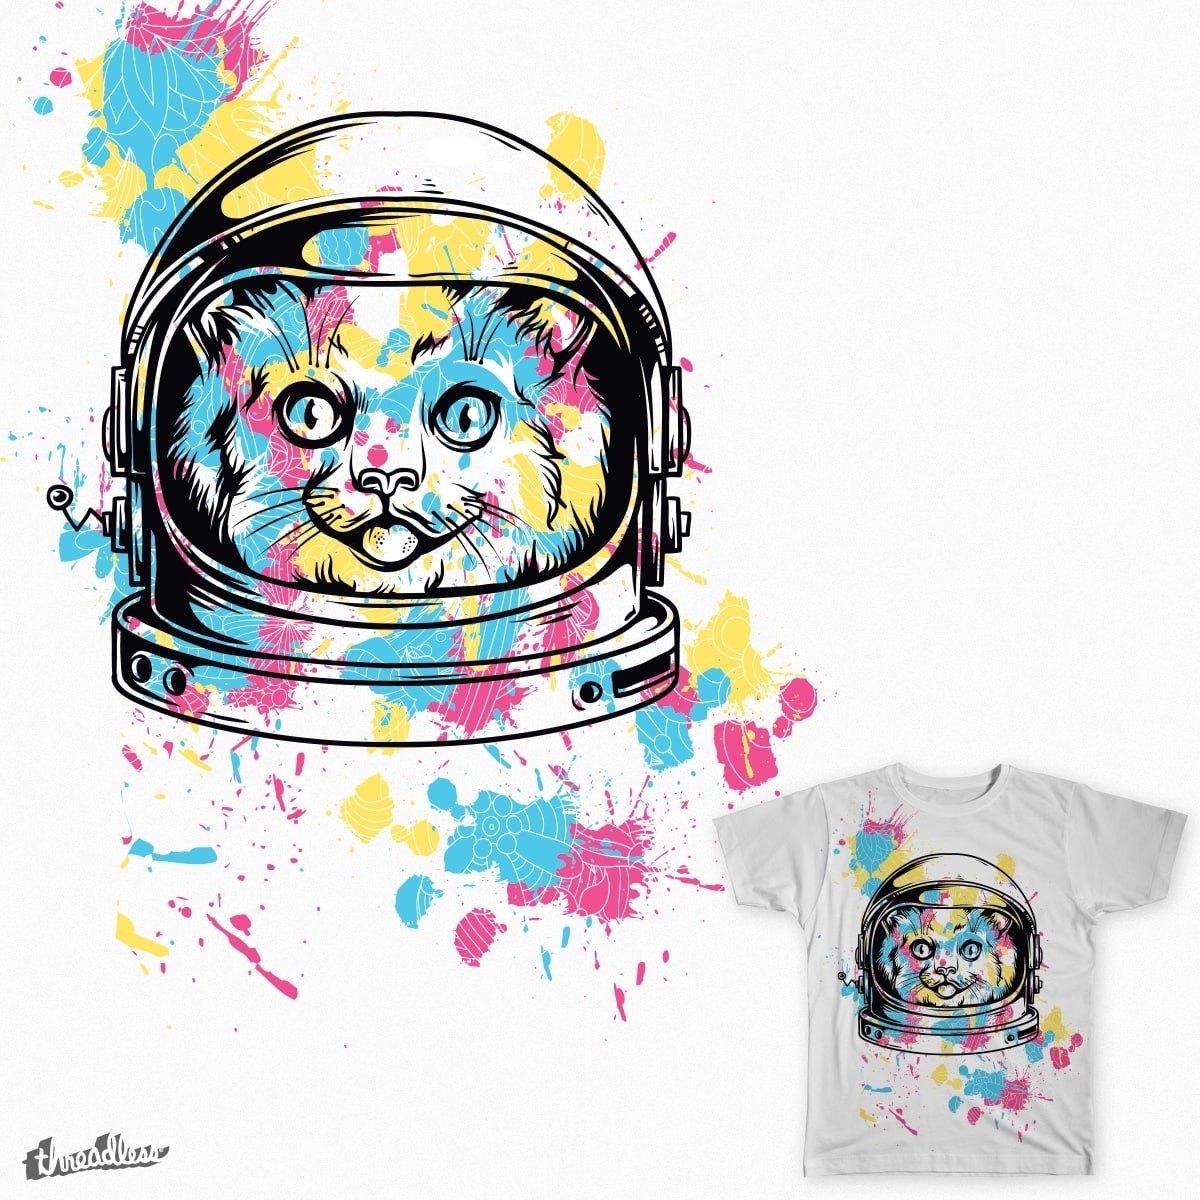 Astronaut Kitty by andresmm91 on Threadless